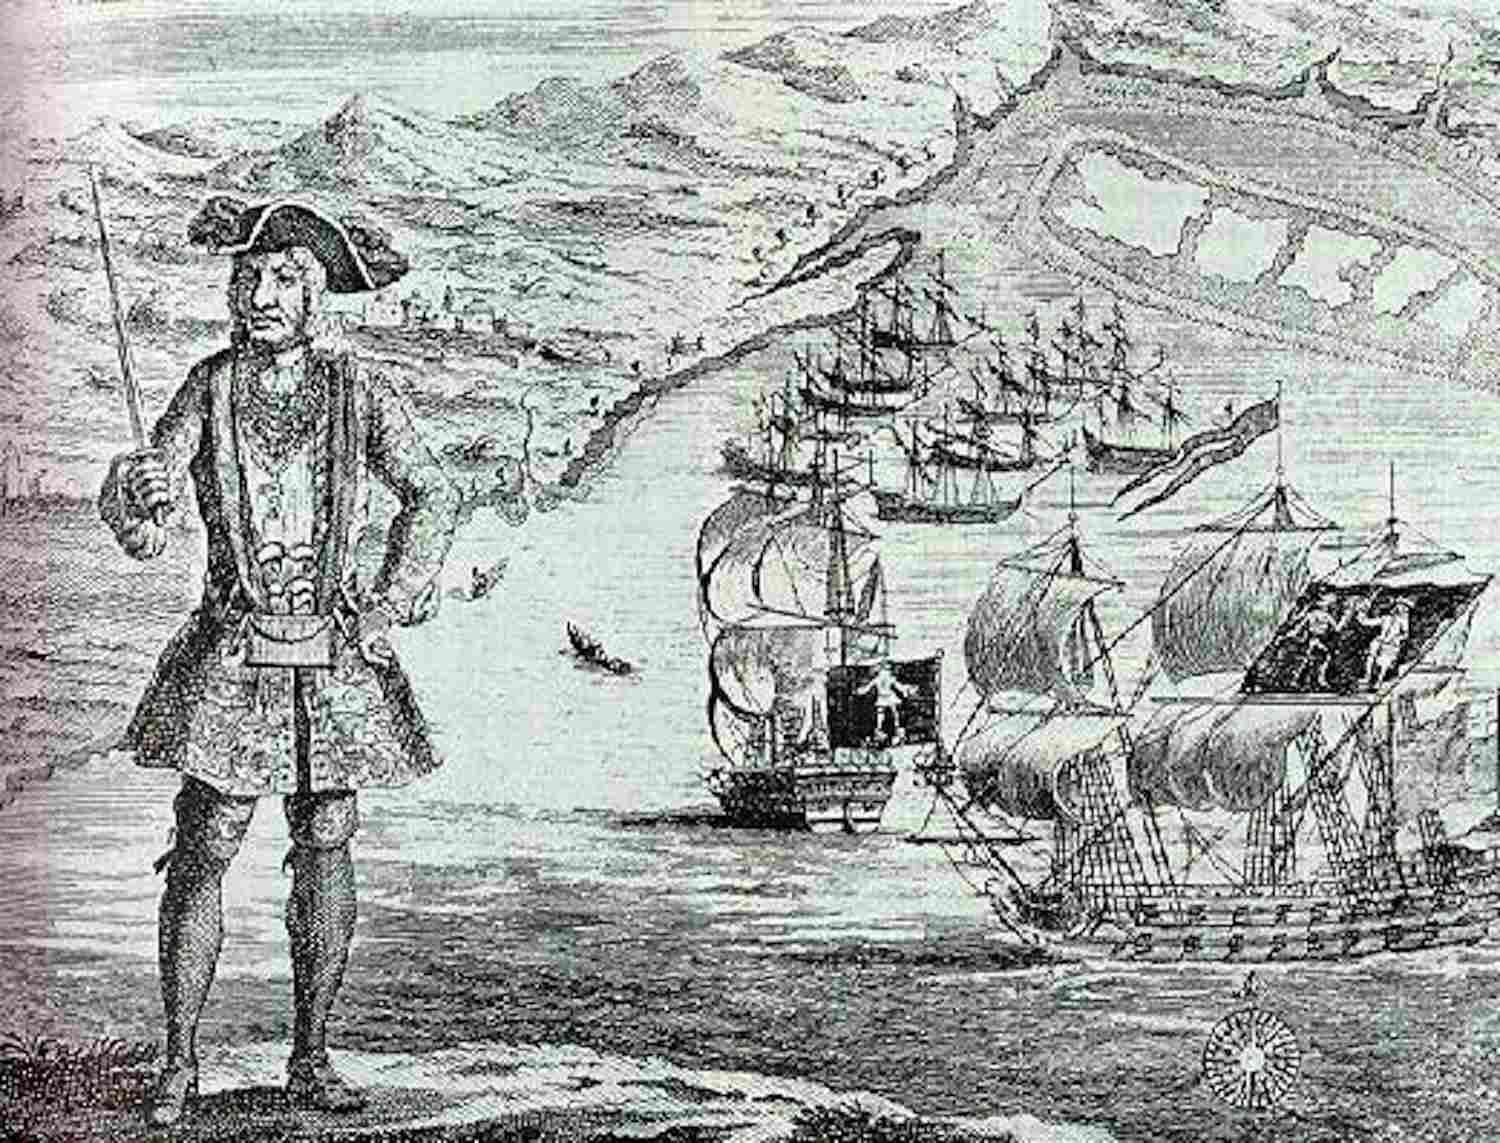 Bartholomew Roberts with his ship and captured merchant ships in the background. A copper engraving[1] from A History of the Pyrates by Captain Charles Johnson c. 1724